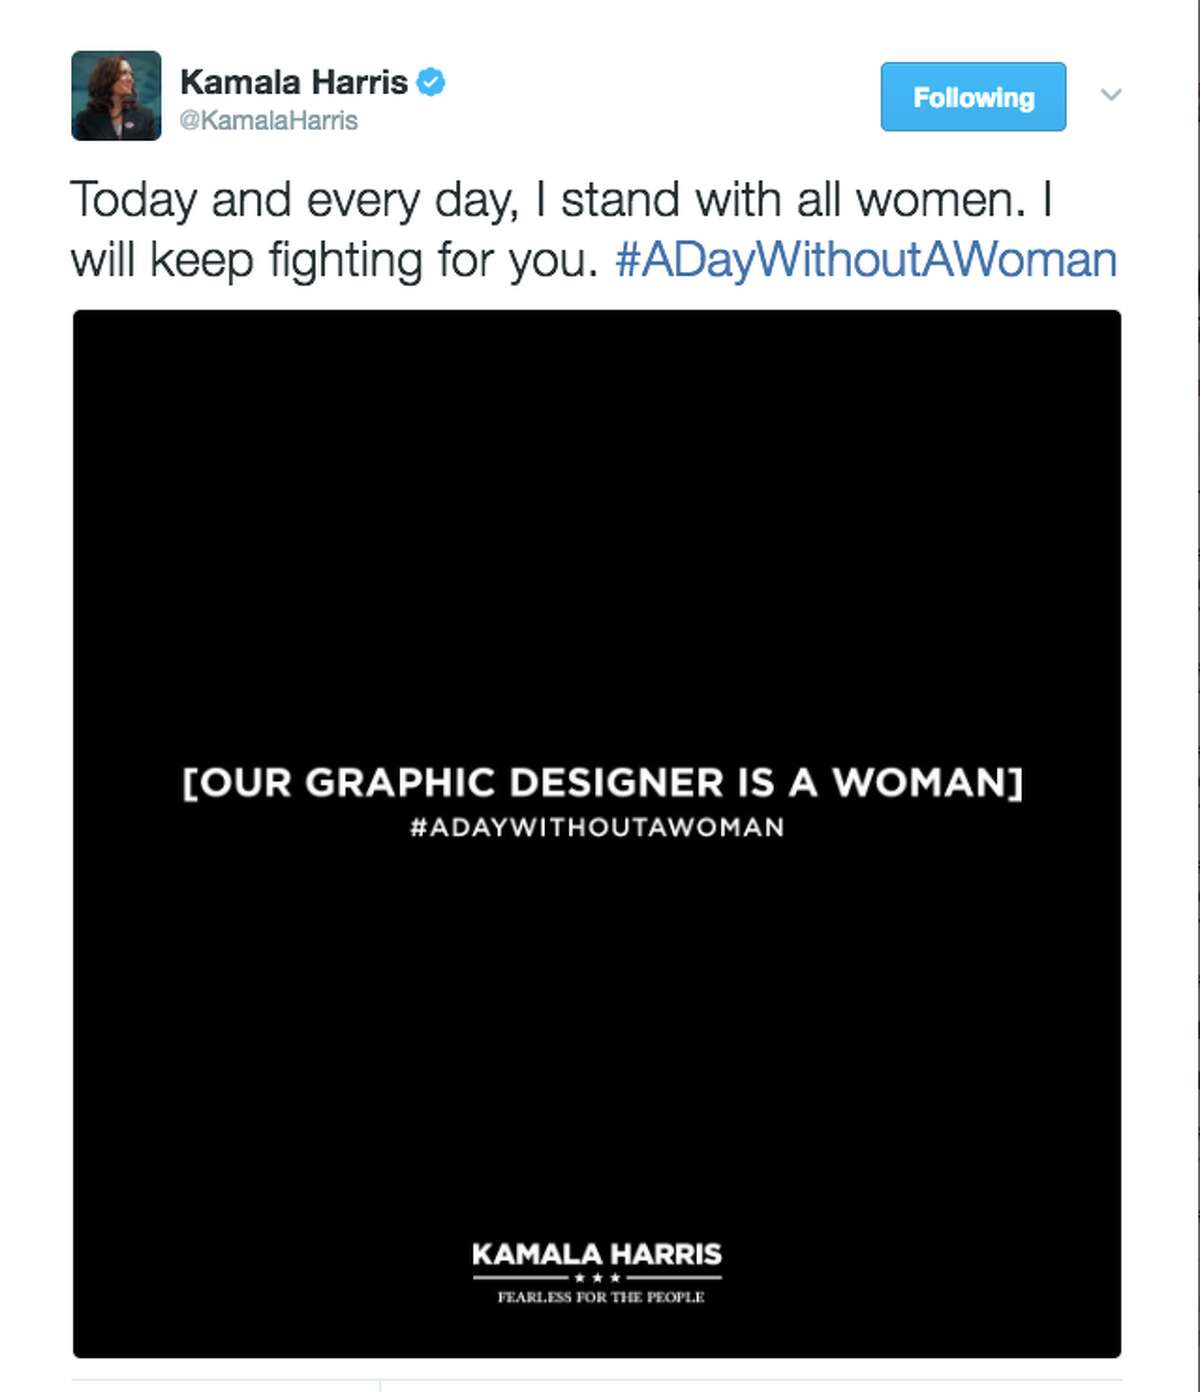 People took to social media to celebrate International Women's Day with deference and humor.